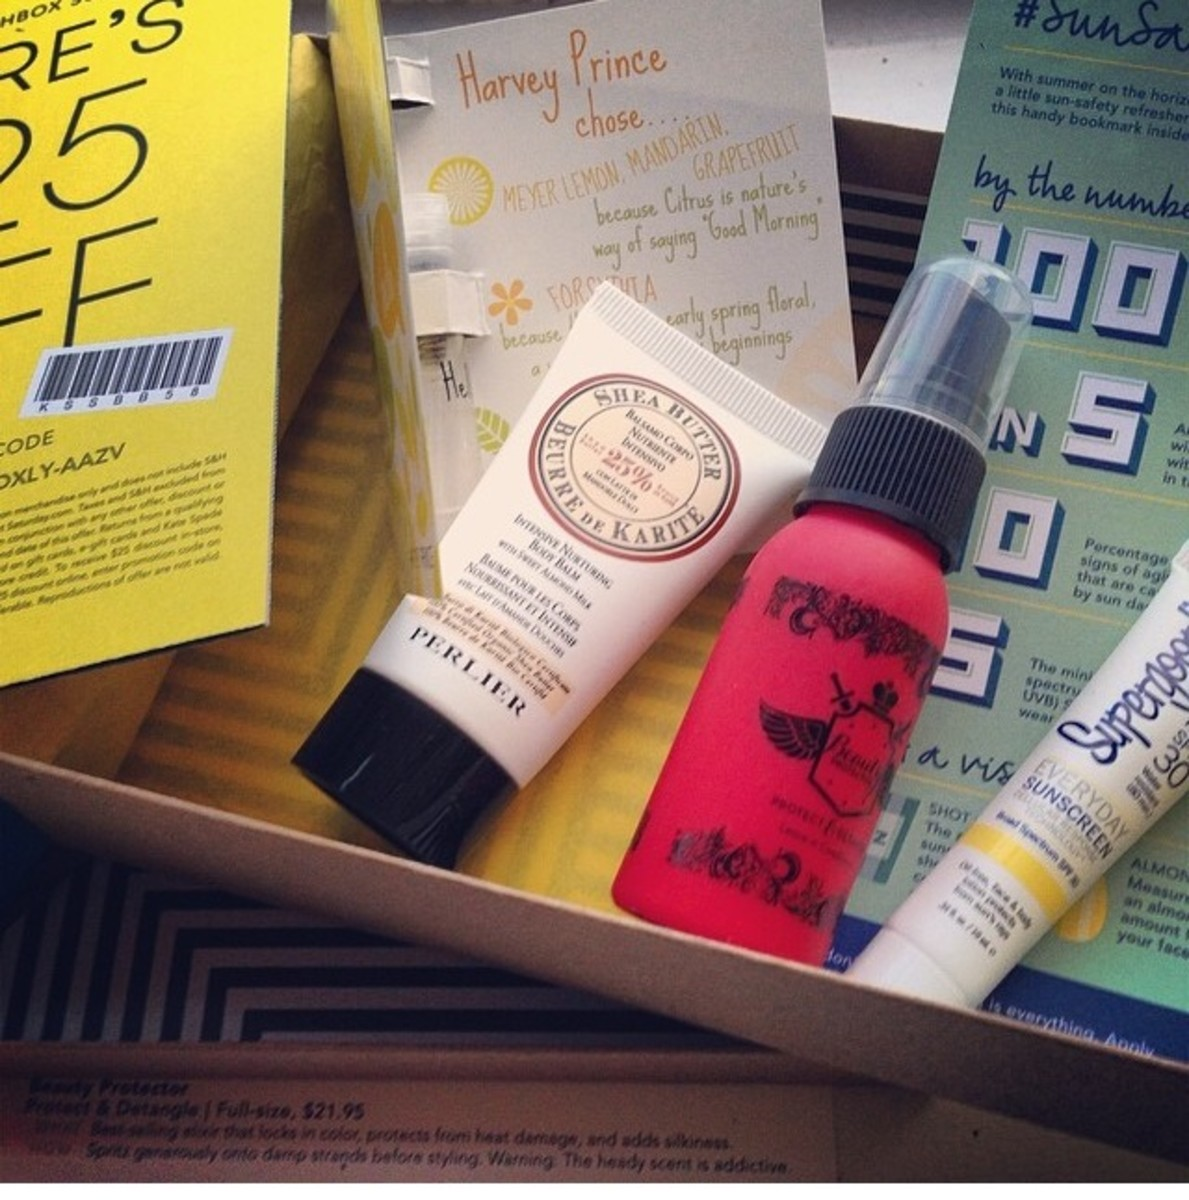 Unboxing the June Birchbox. It had a Kate Spade Saturday gift card for $25. Pretty sweet!